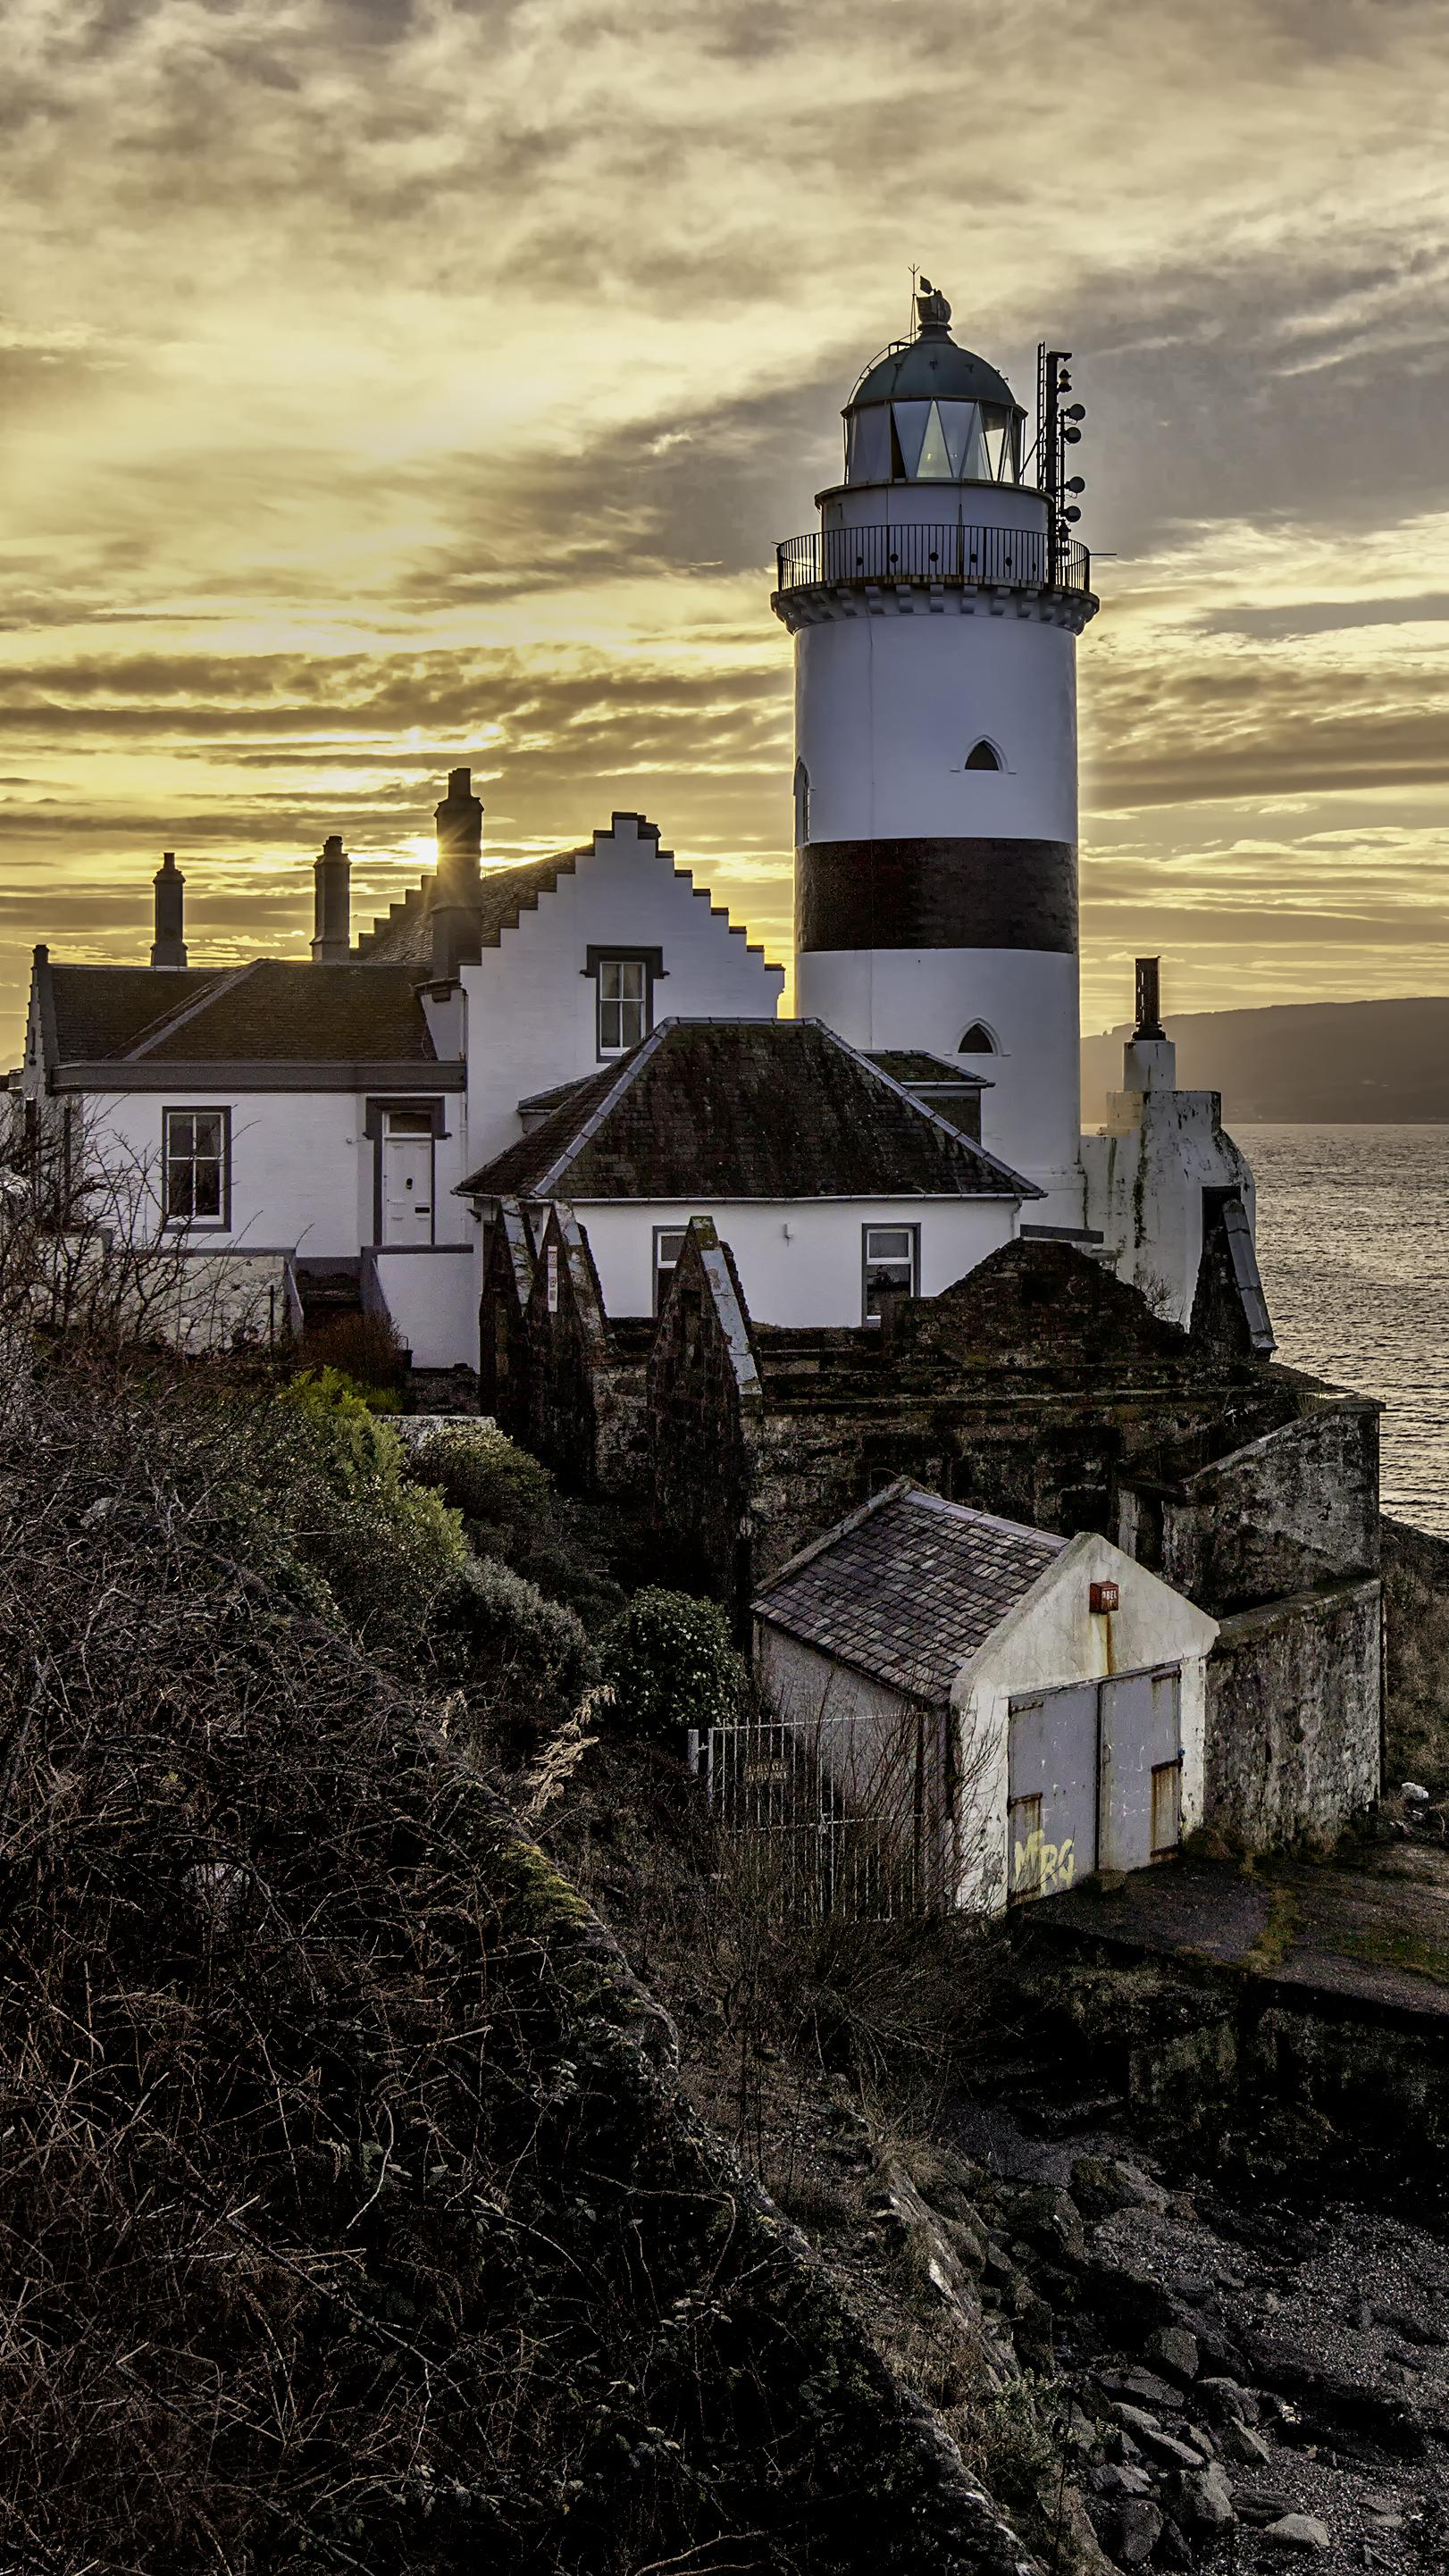 Cloch Lighthouse photo